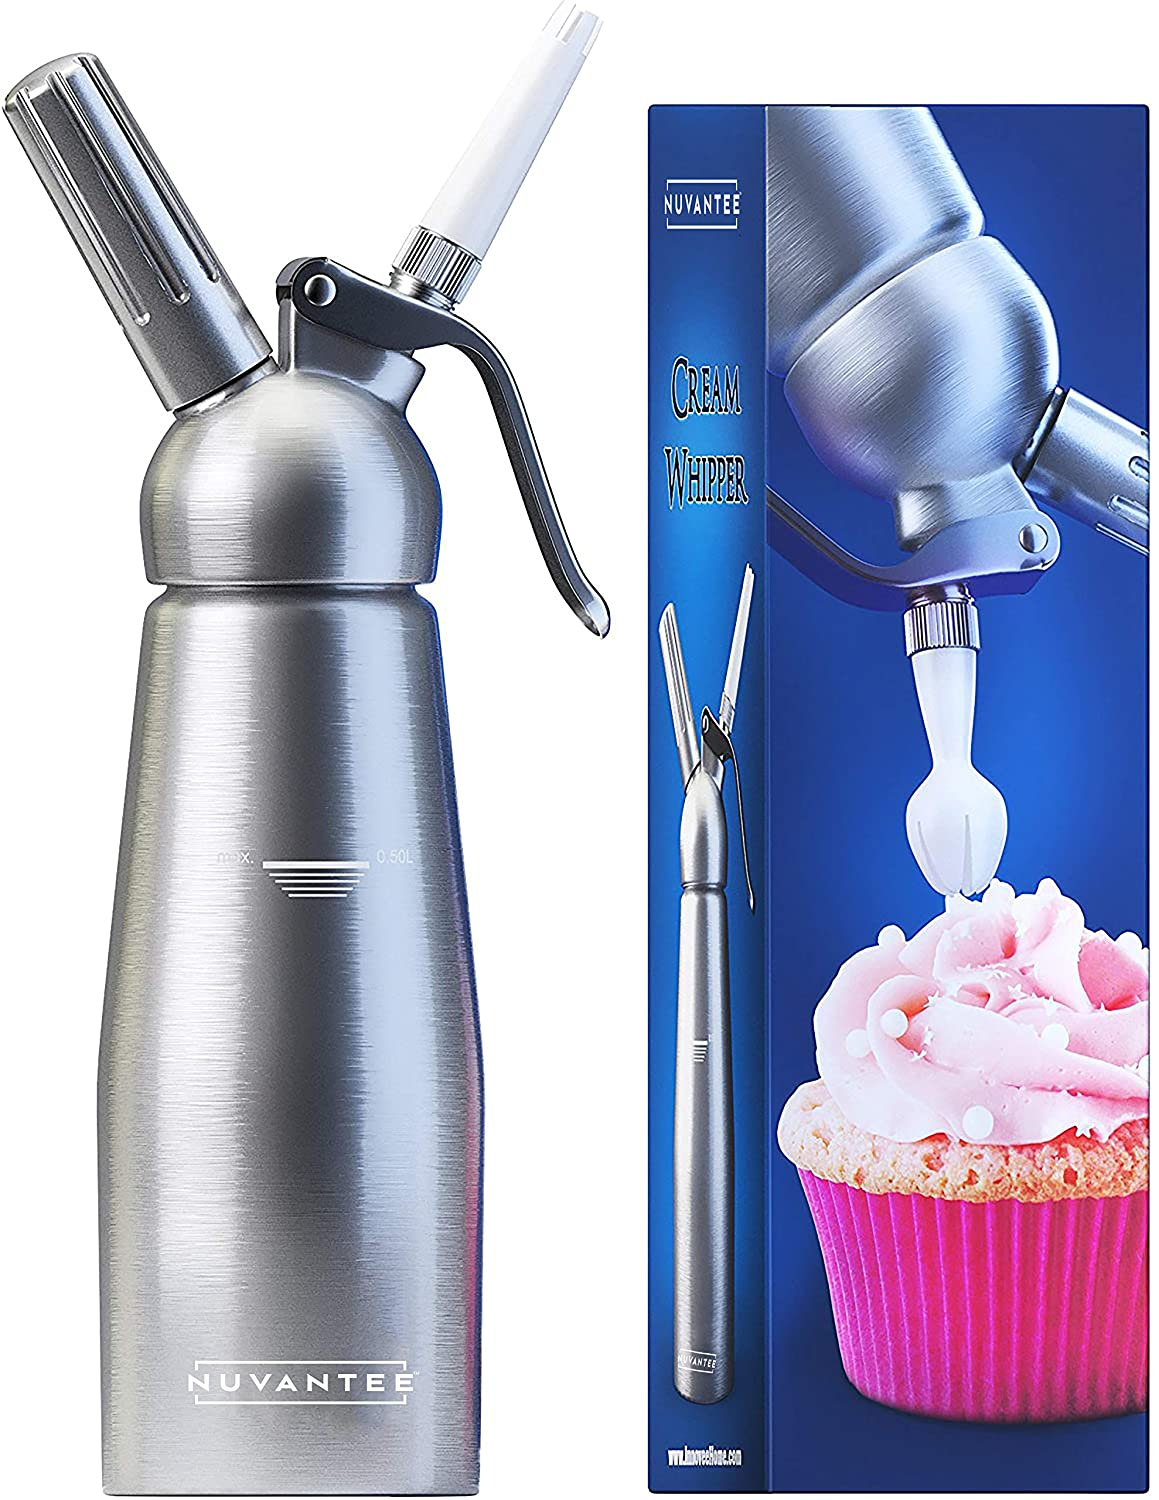 Nuvantee Cream Whipper (1-Pint) - Professional Aluminum Whipped Cream Dispenser With 3 Decorating Nozzles - Uses Standard N20 Cartridges (not included)